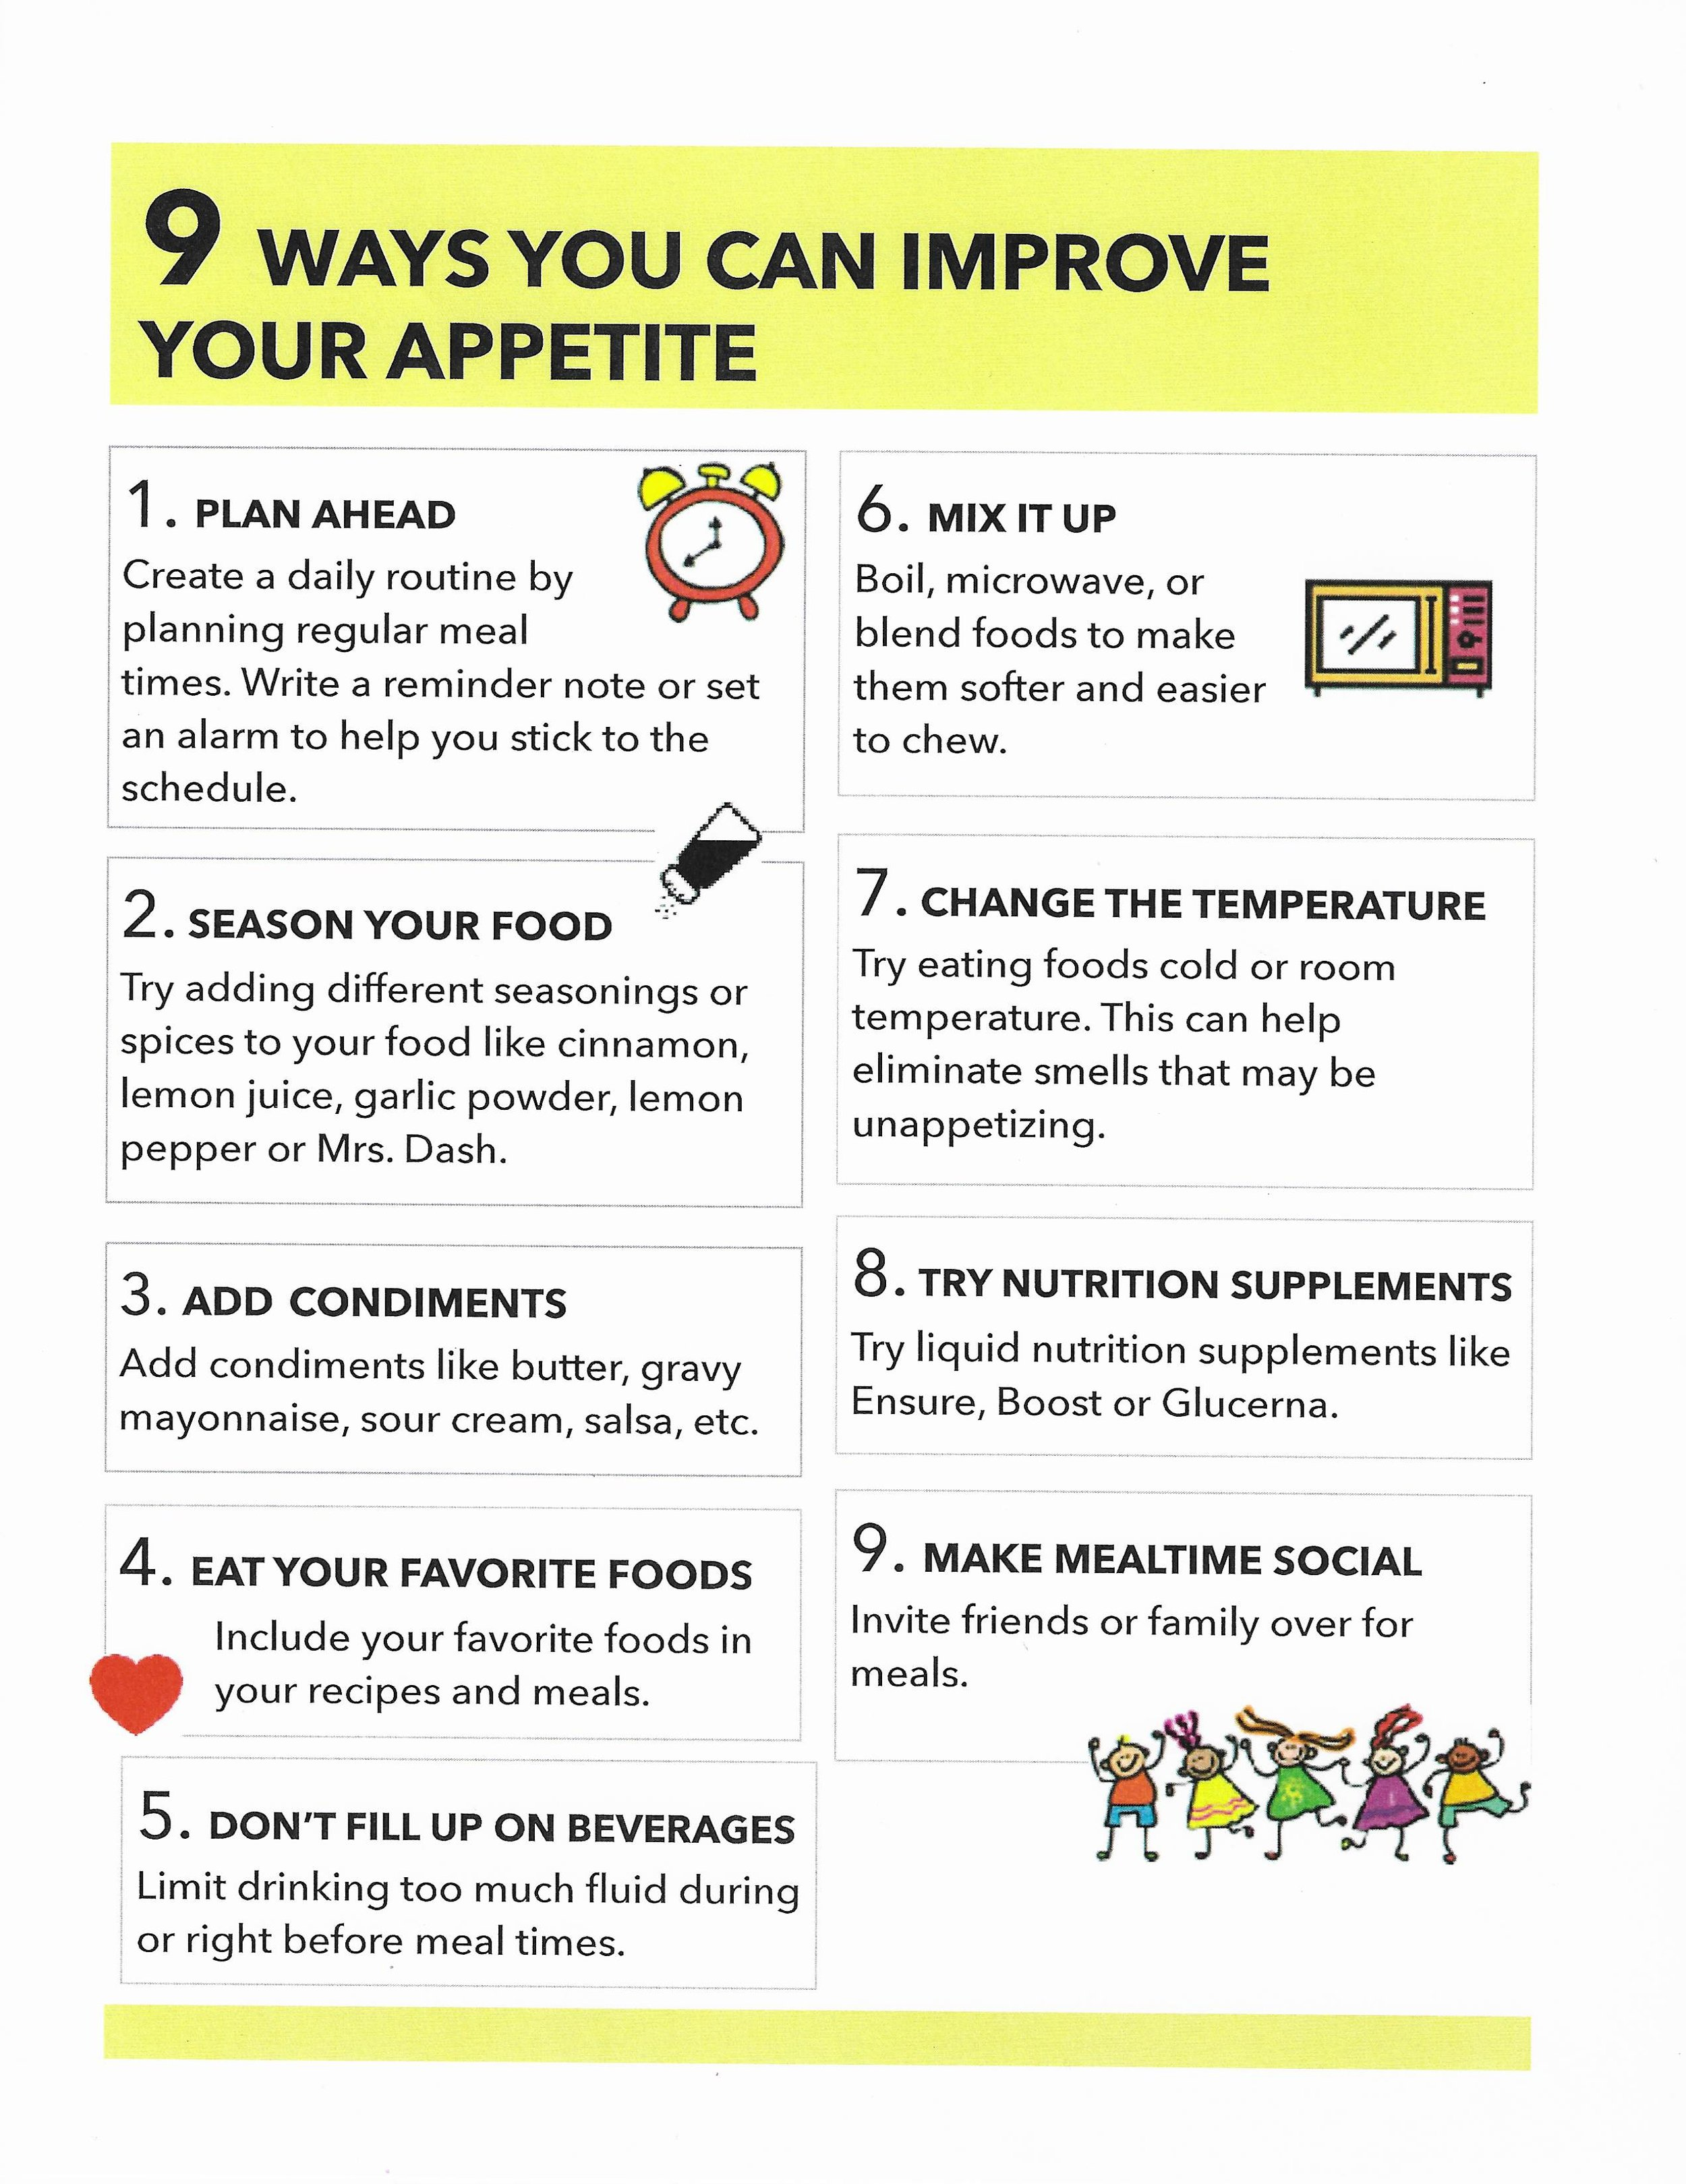 9 ways to improve your appetite.jpg